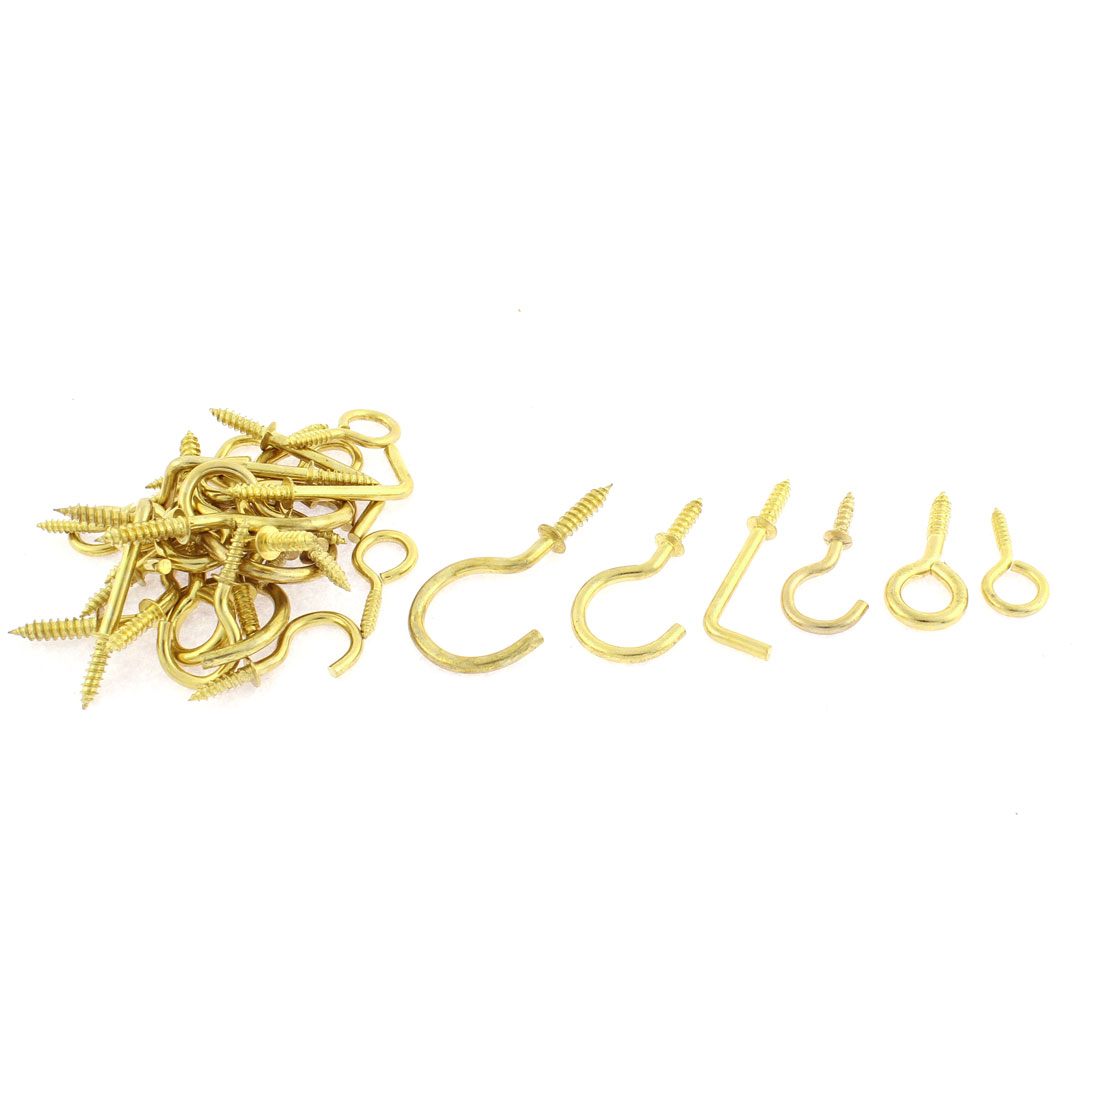 32pcs Gold Tone Eye Hook Open Screw L Shaped Bolt Assorted Set